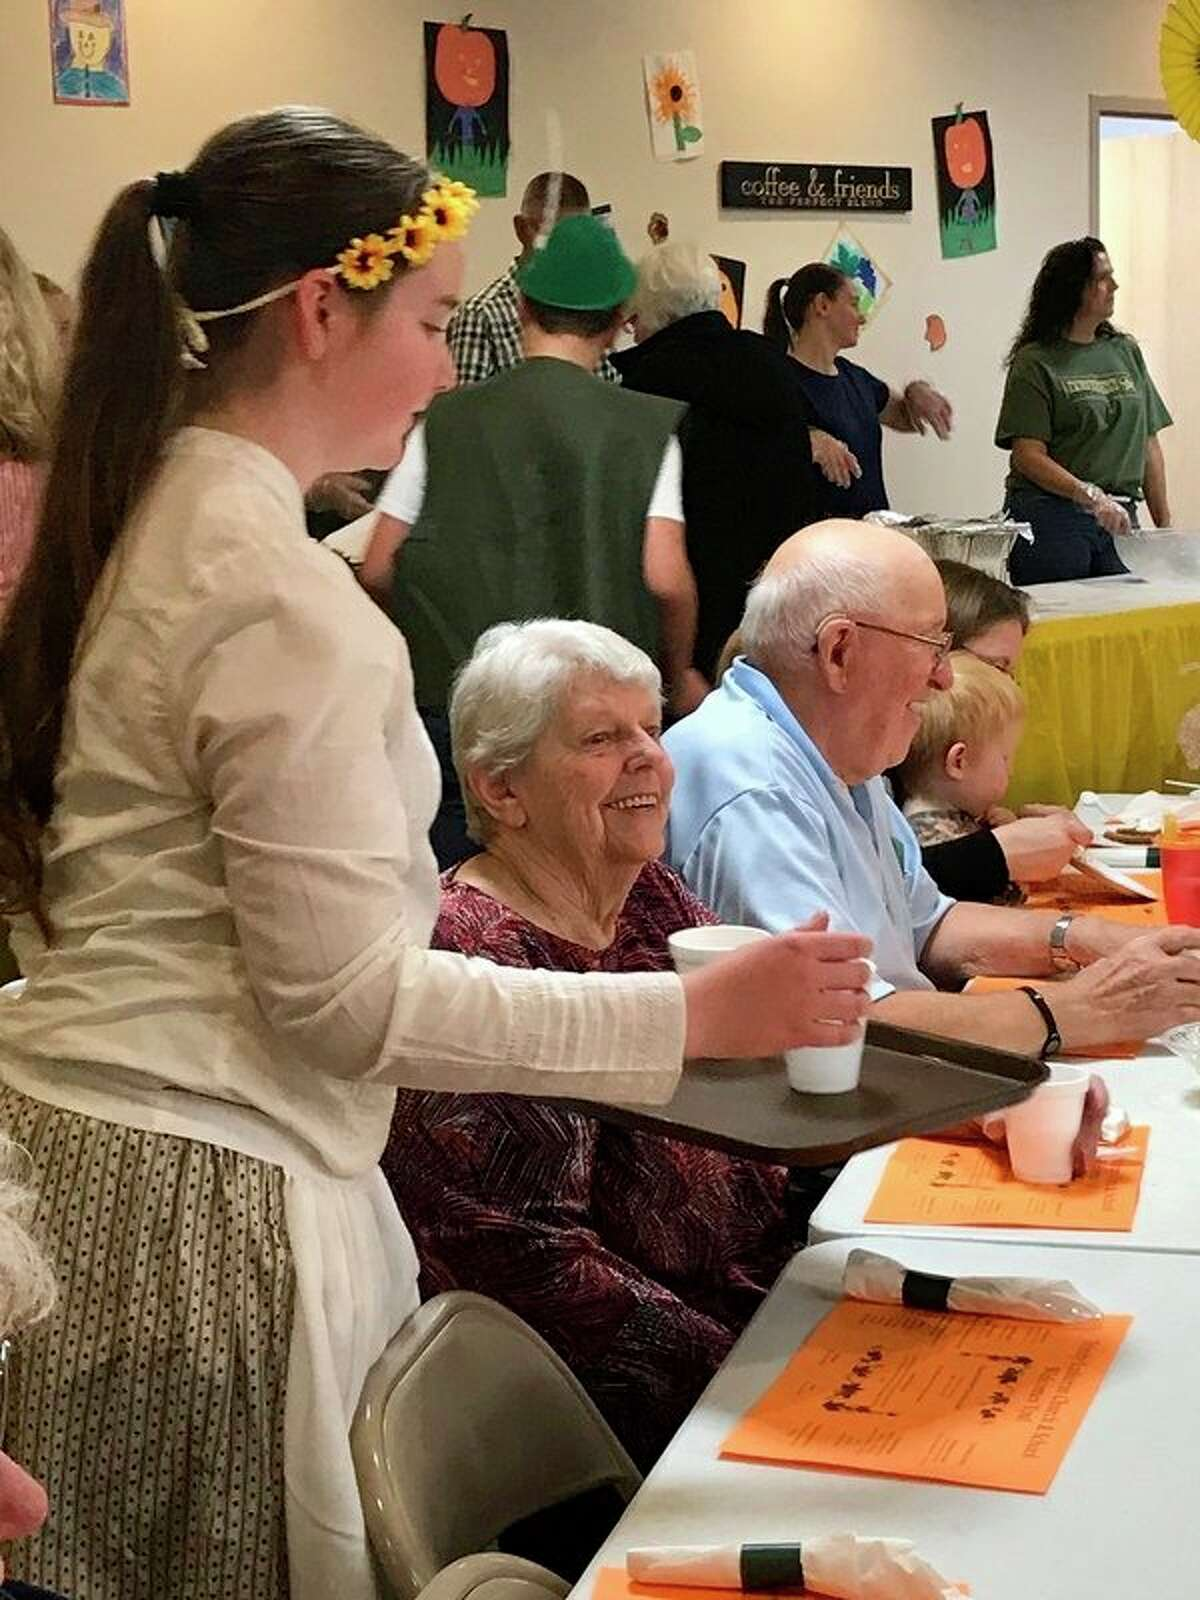 Trinity Lutheran Church and School students in gradesfifth througheighth served diners at the annual Harvest Fest dinner on Saturday, Oct. 19. The dinner raised $2,000 for the school's Parent Teacher League. The moneywill be used for school-related activities throughout the year. (Submitted photo)